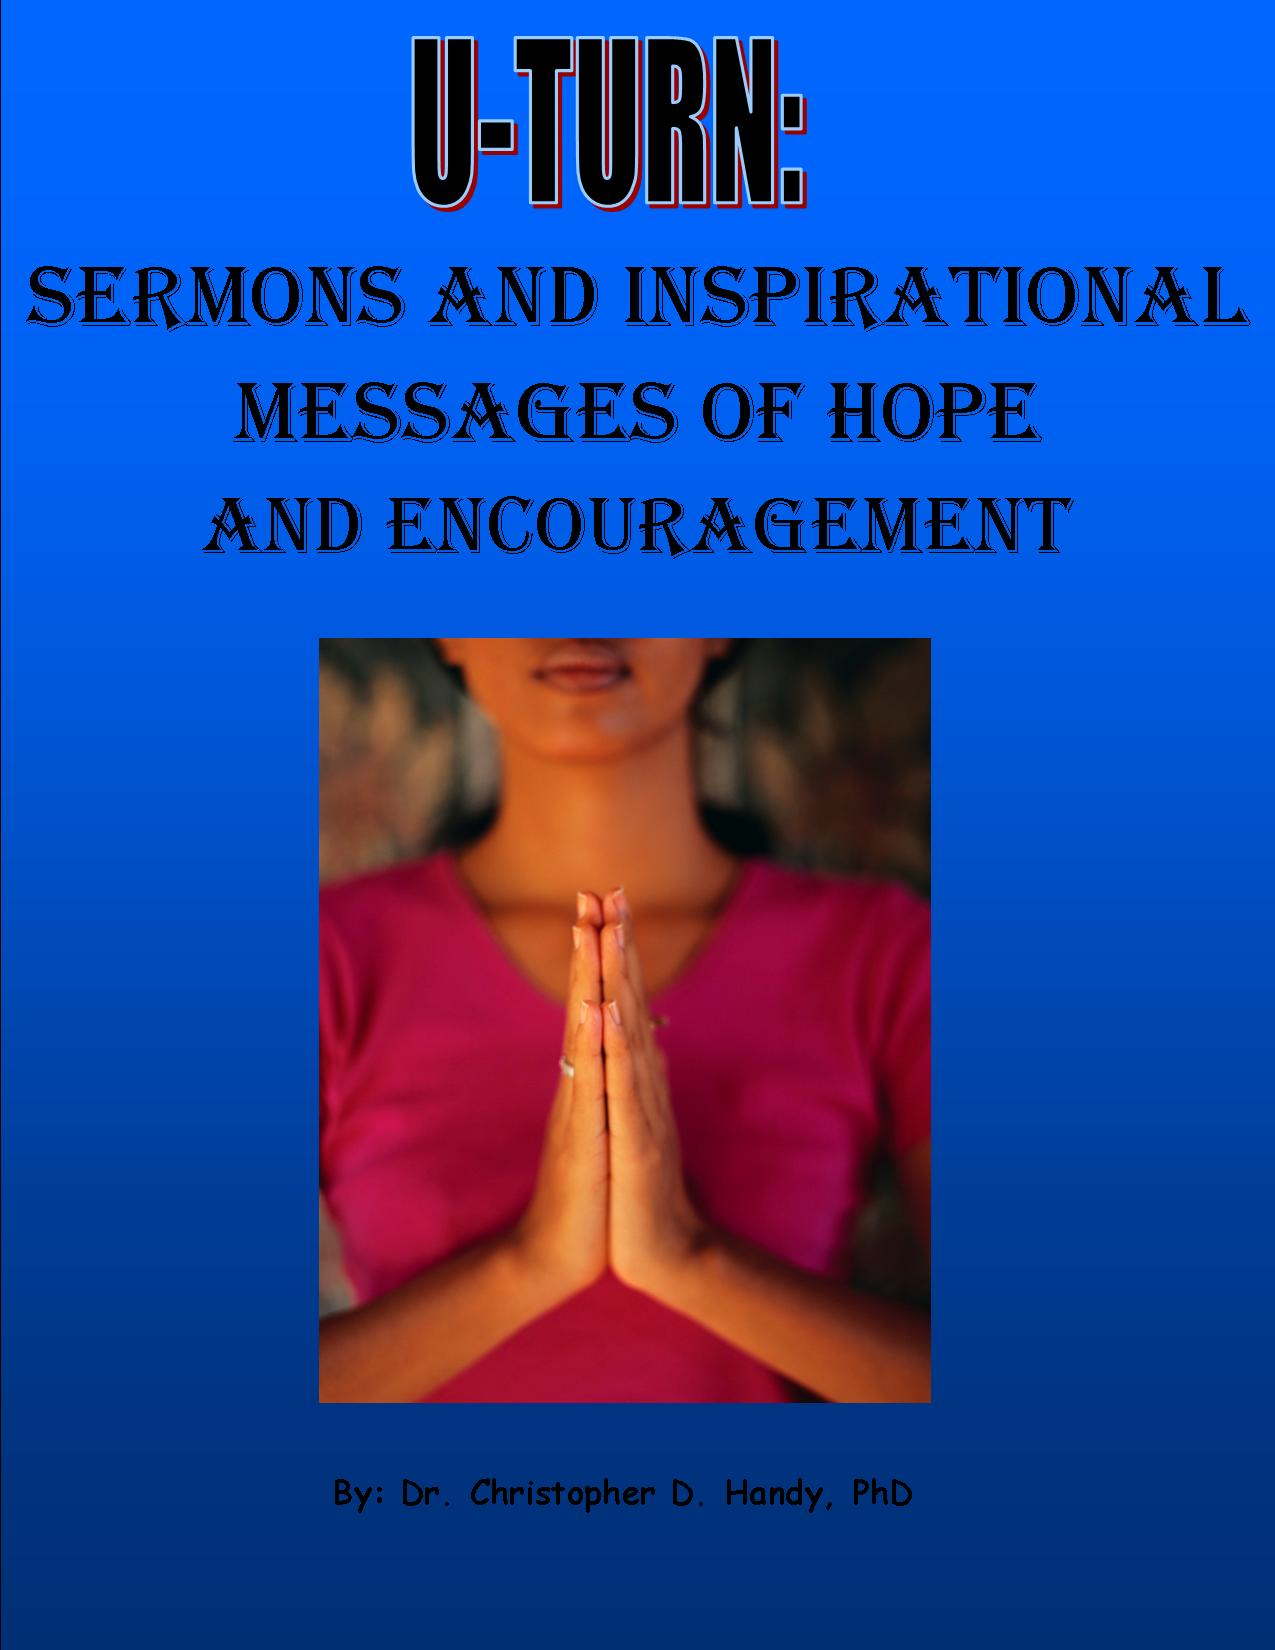 U-Turn Sermons and Messages of Hope and Encouragement